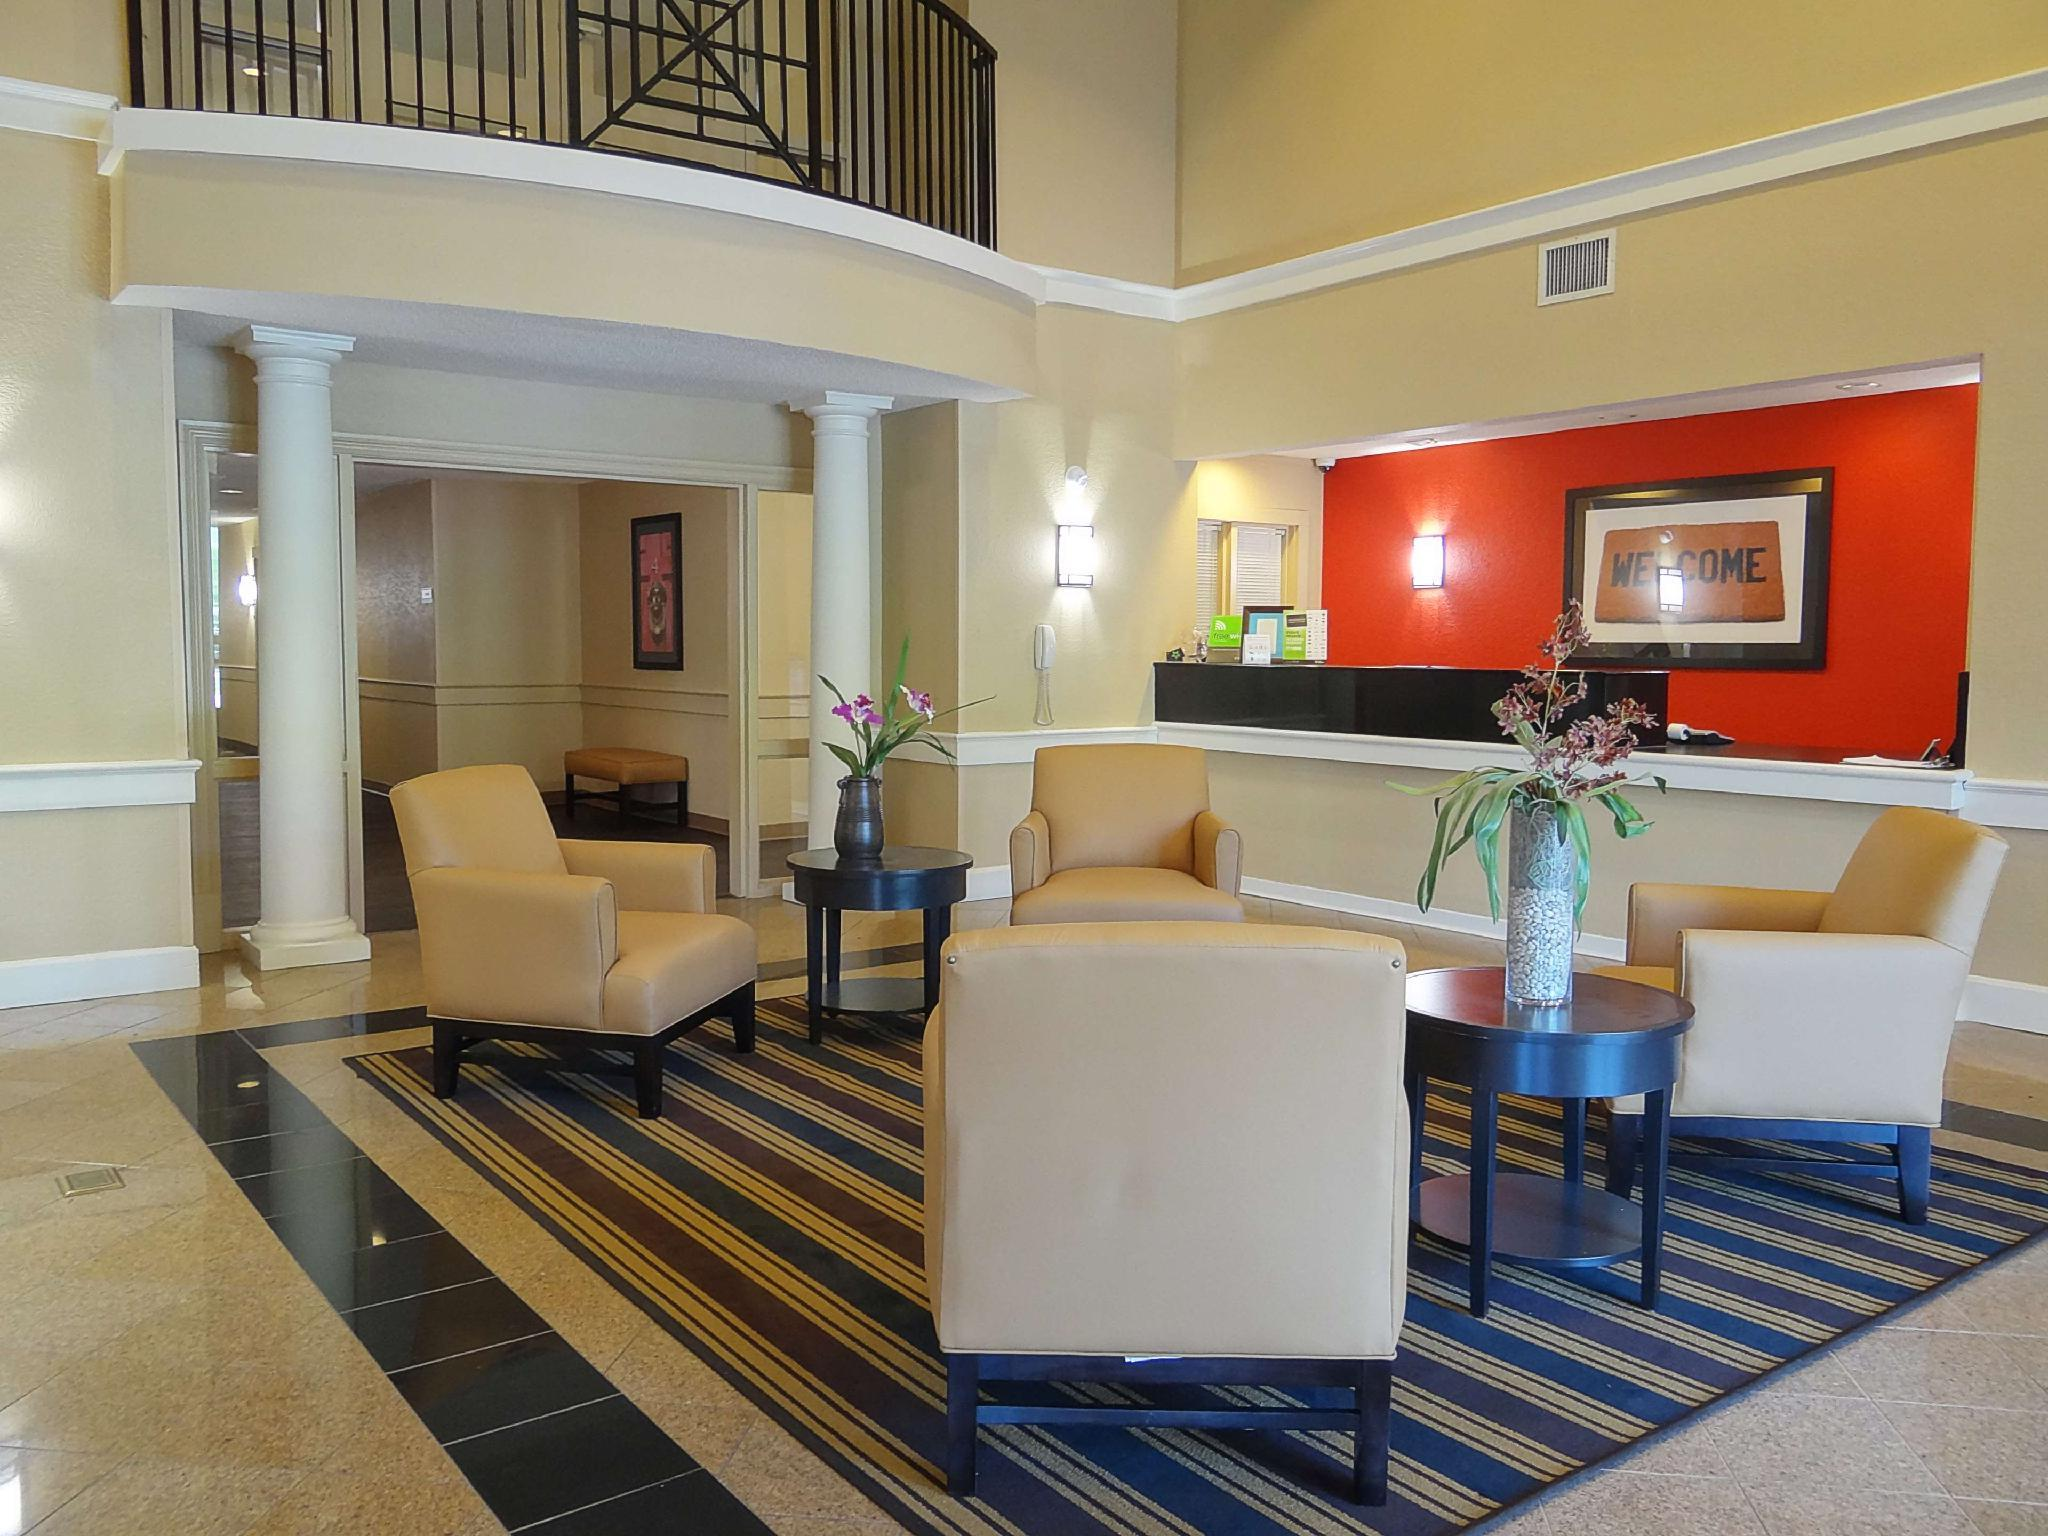 Extended Stay America Las Vegas East Flamingo, Clark